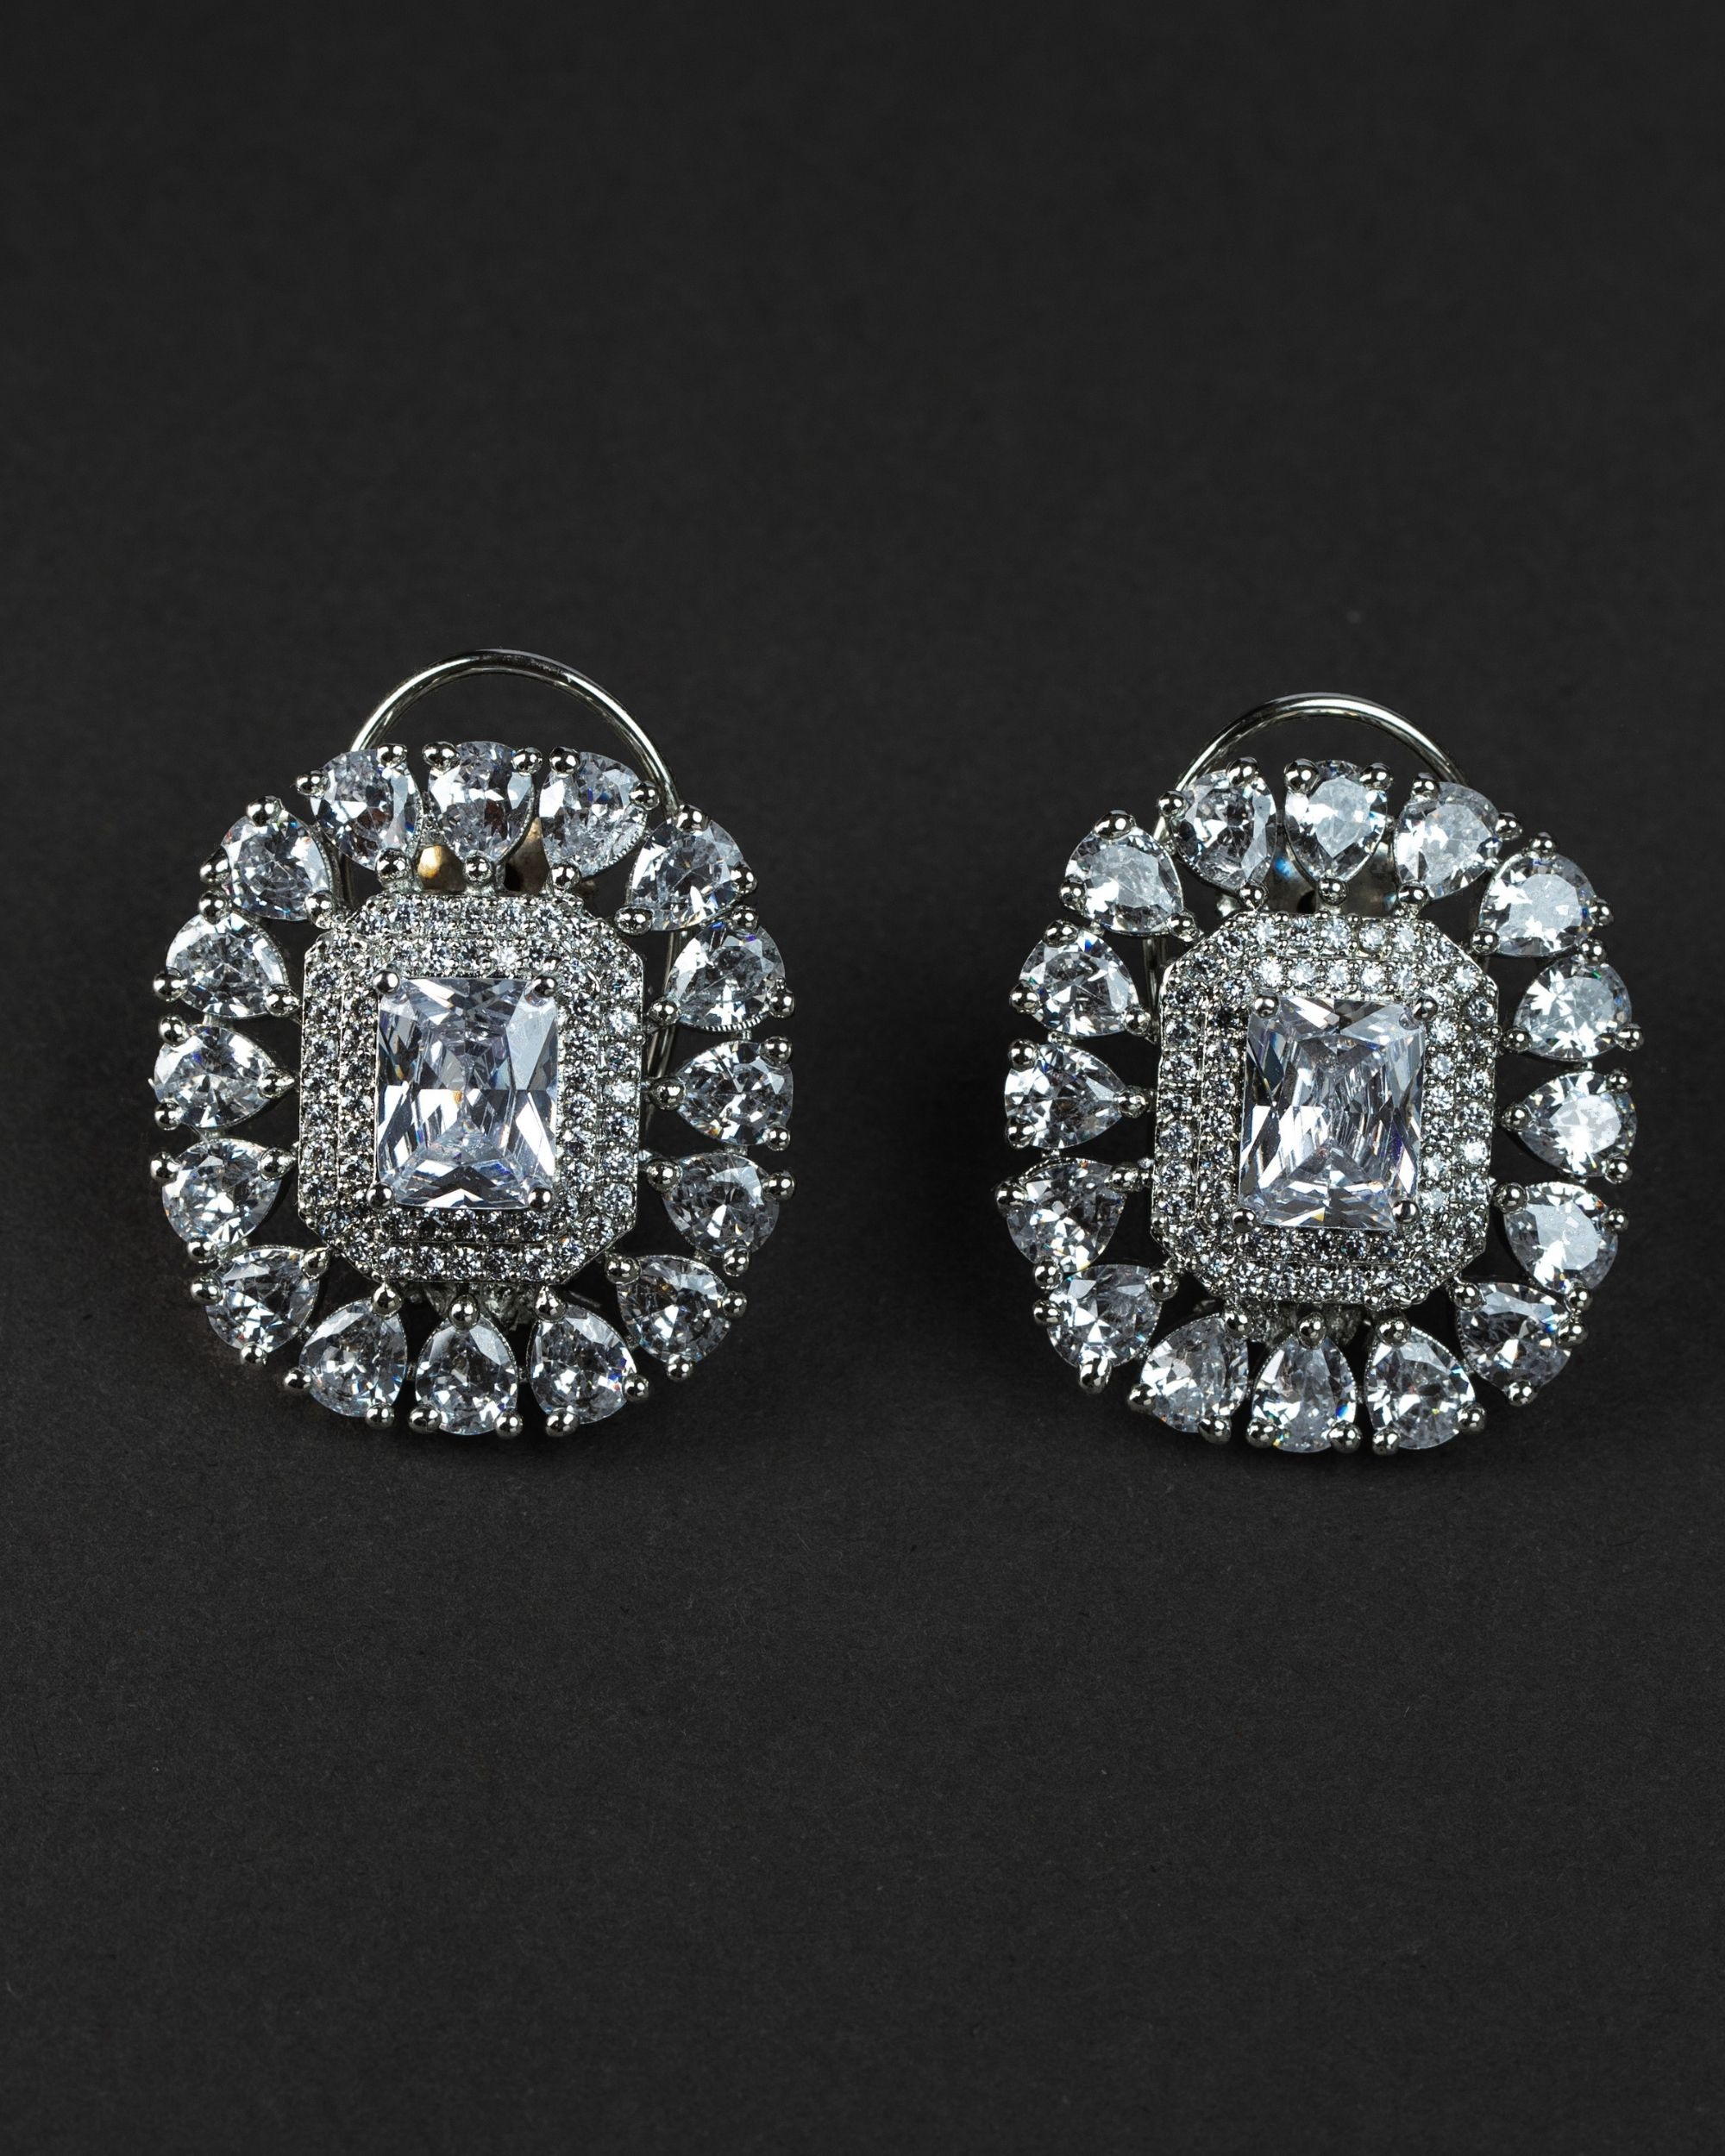 Crystal solitaire earring